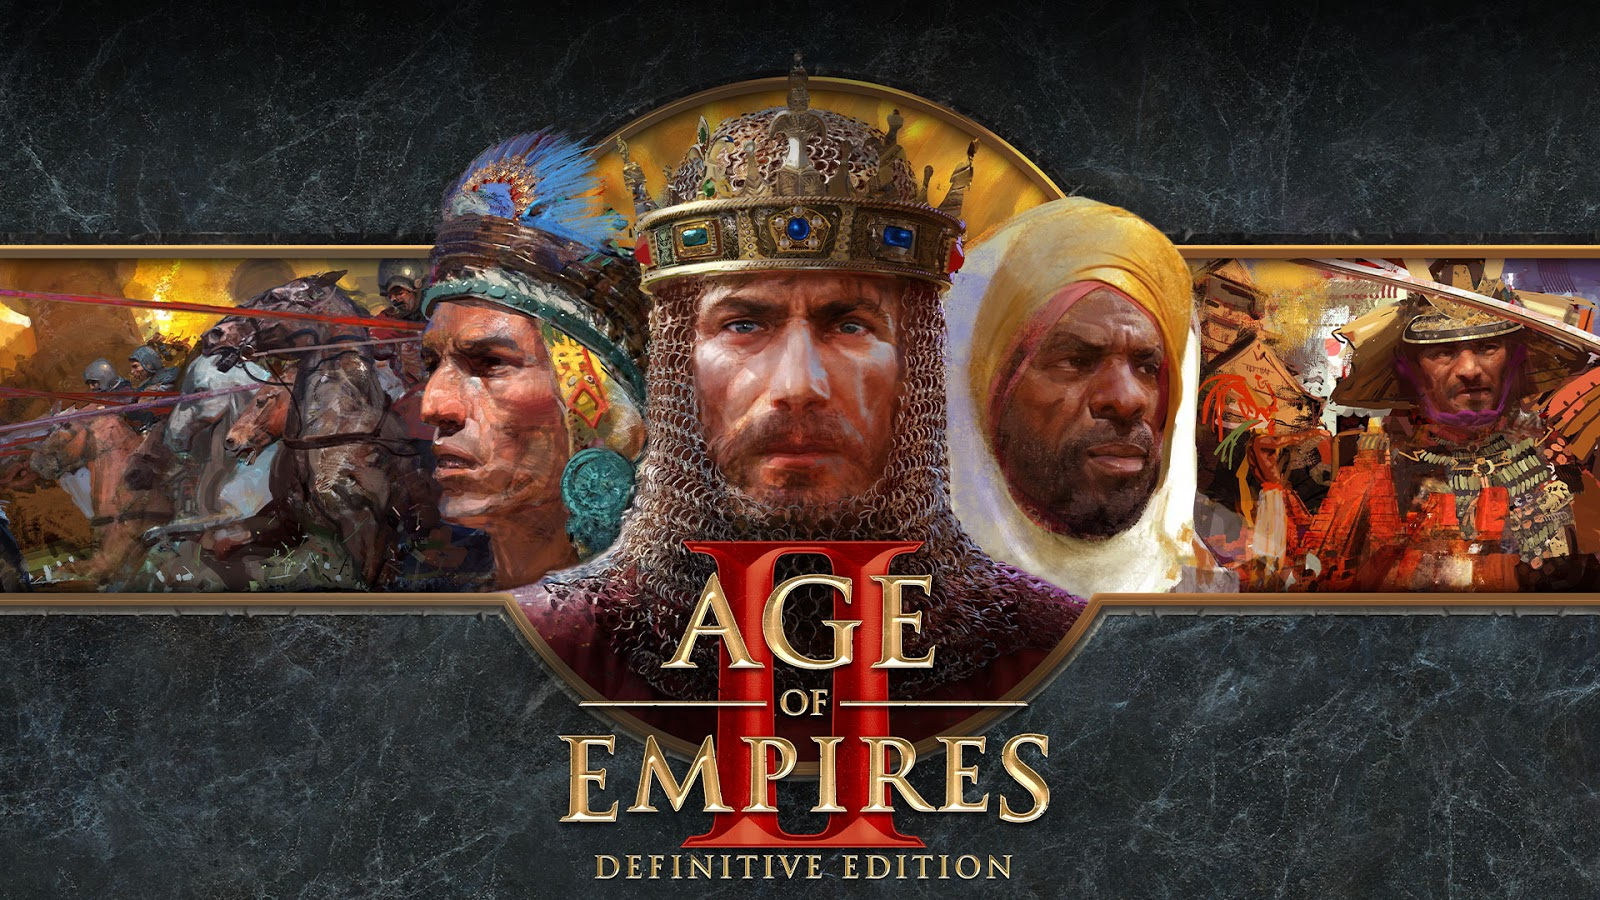 Age of Empires II: Definitive Edition for Windows 10 and Steam